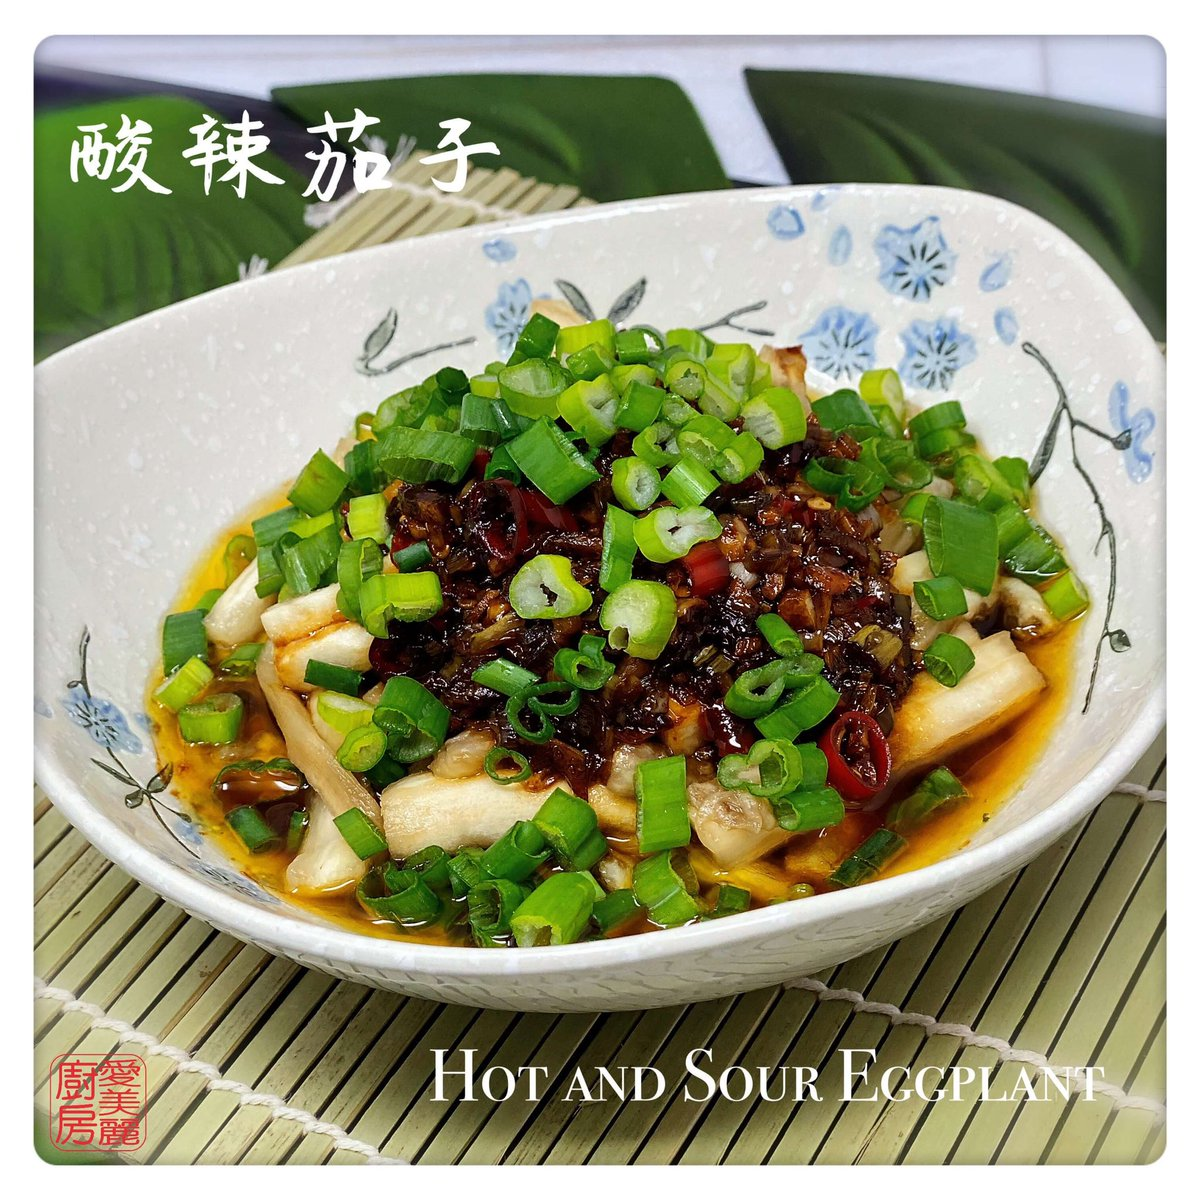 Hot and Sour Egg Plant 酸辣茄子 recipe just posted. The texture is perfect and the sauce is nothing short of amazing! A must try! 🥢🥡😋    #auntieemilyskitchen #homemade #homecooking #homecooked  #foodie #yummy #goodeats #nomnom #chinesefood #veggies